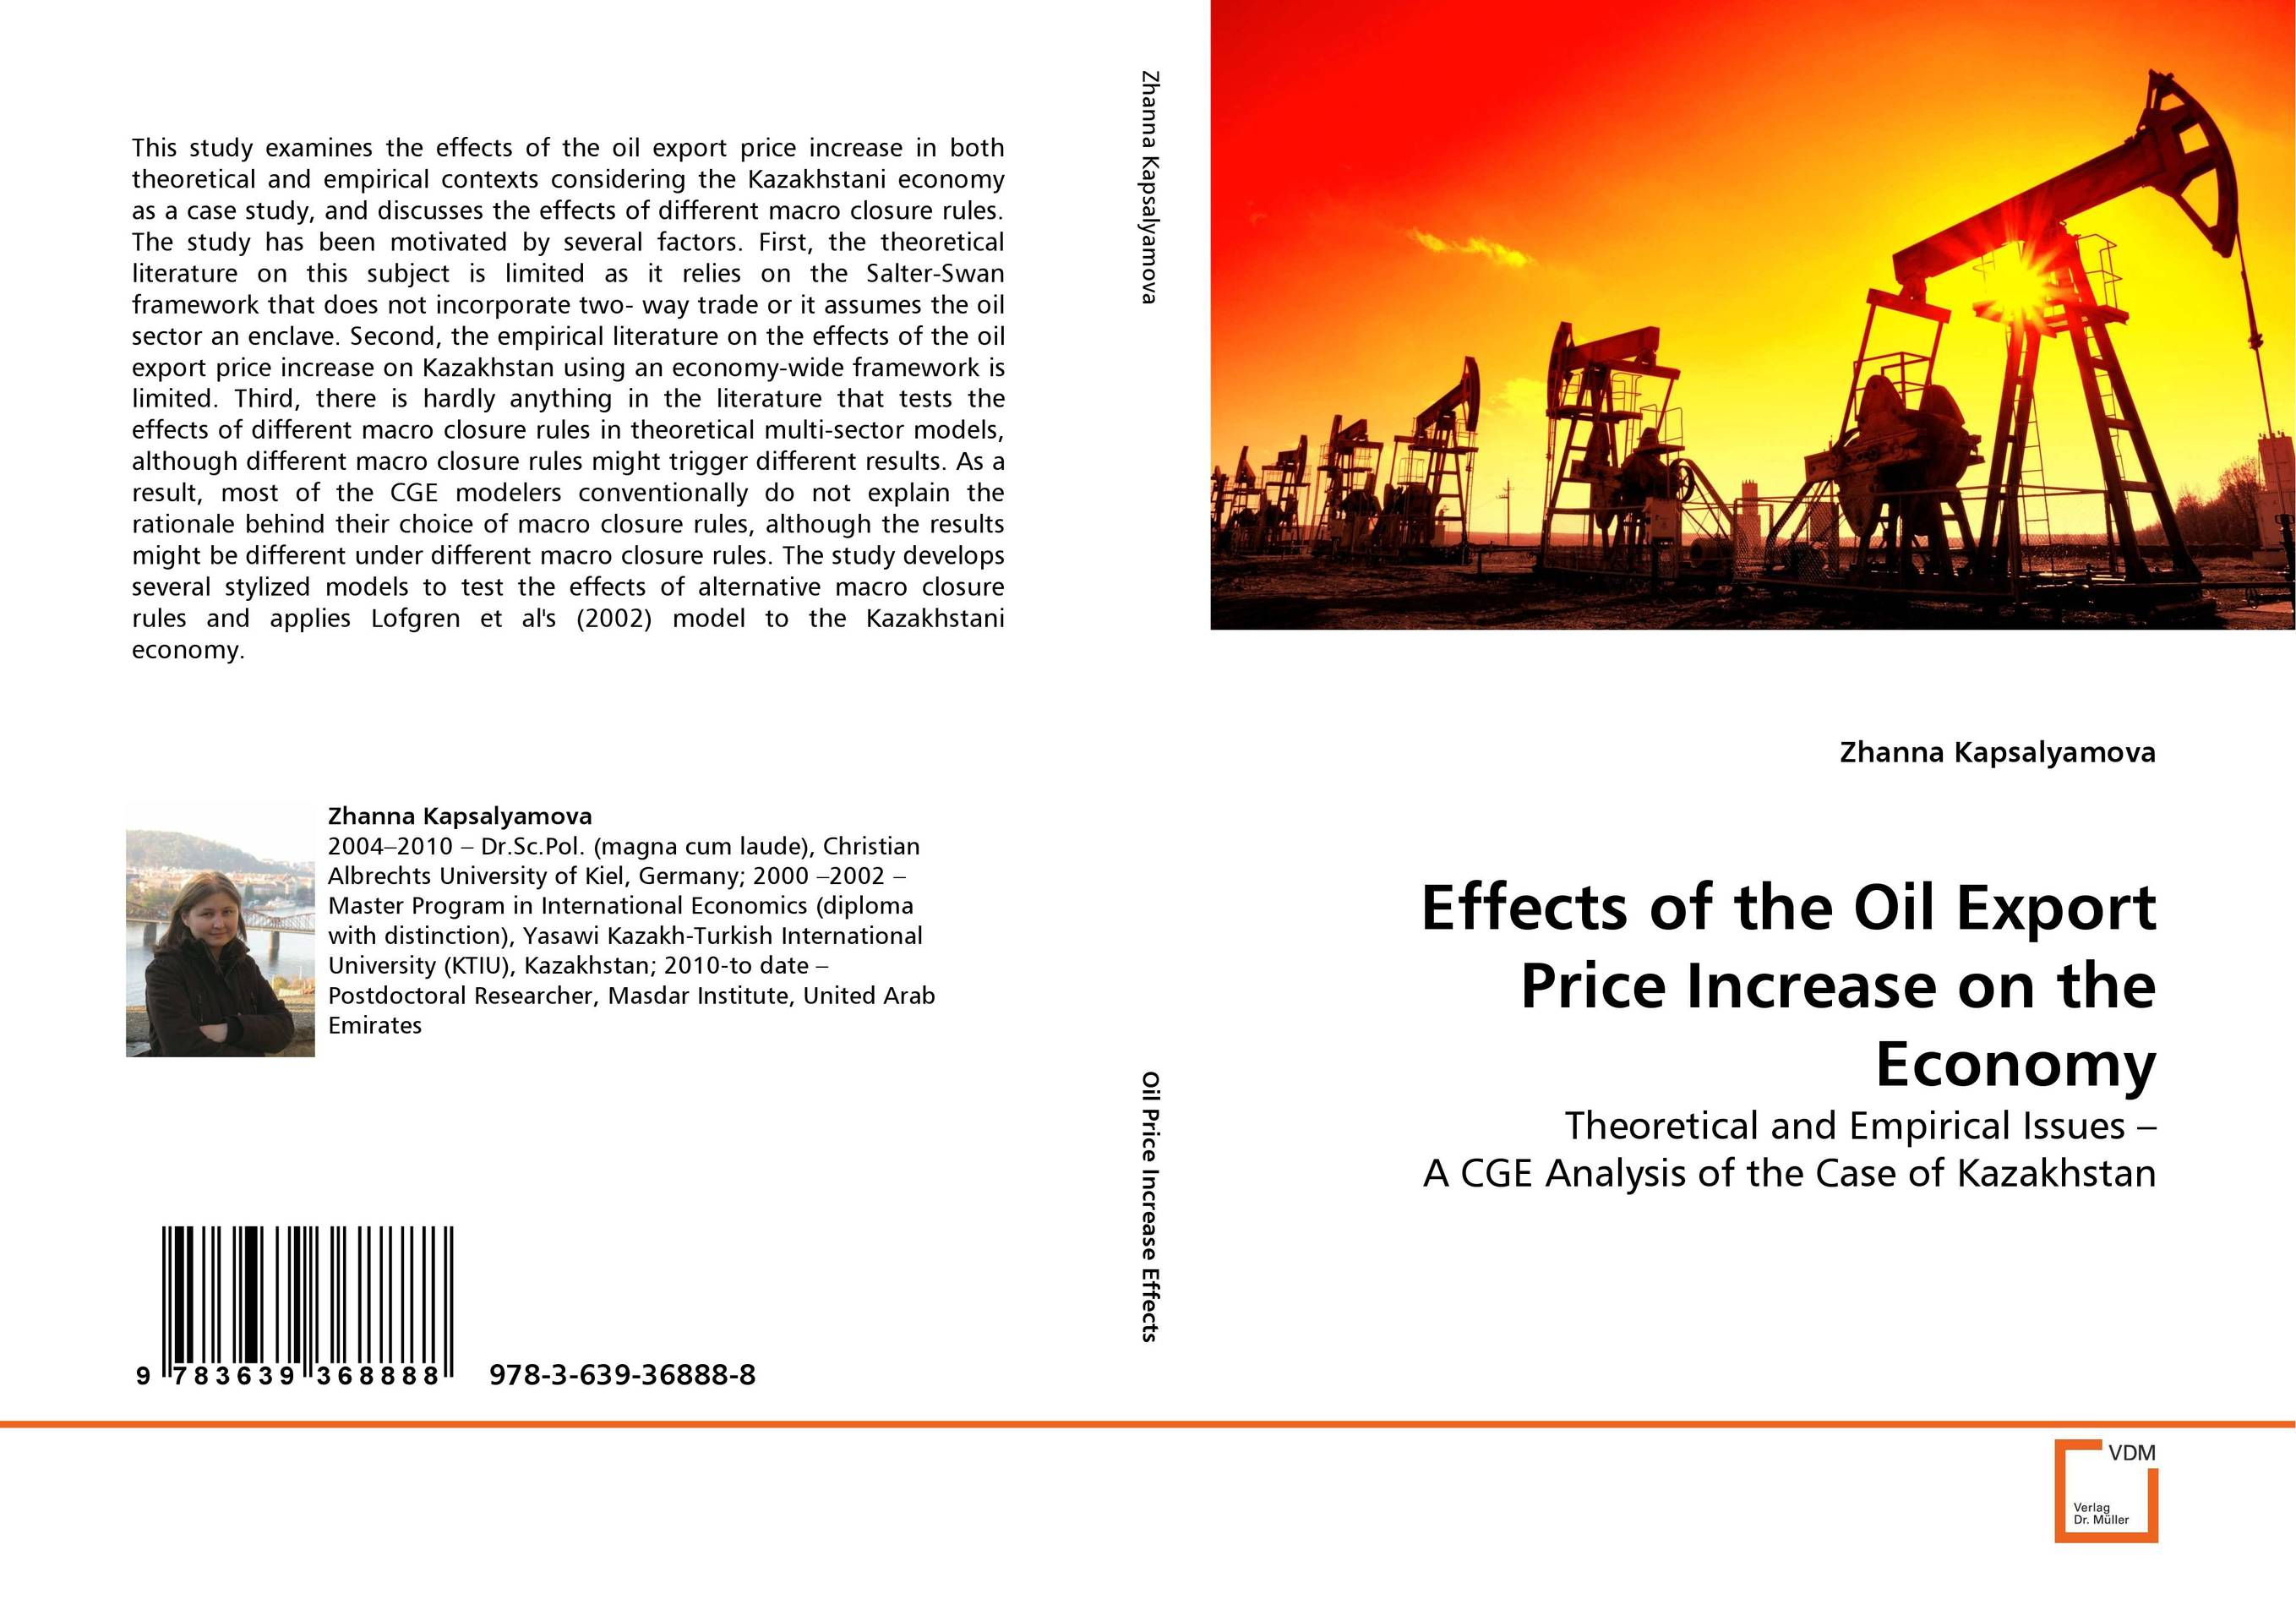 Effects of the Oil Export Price Increase on the Economy